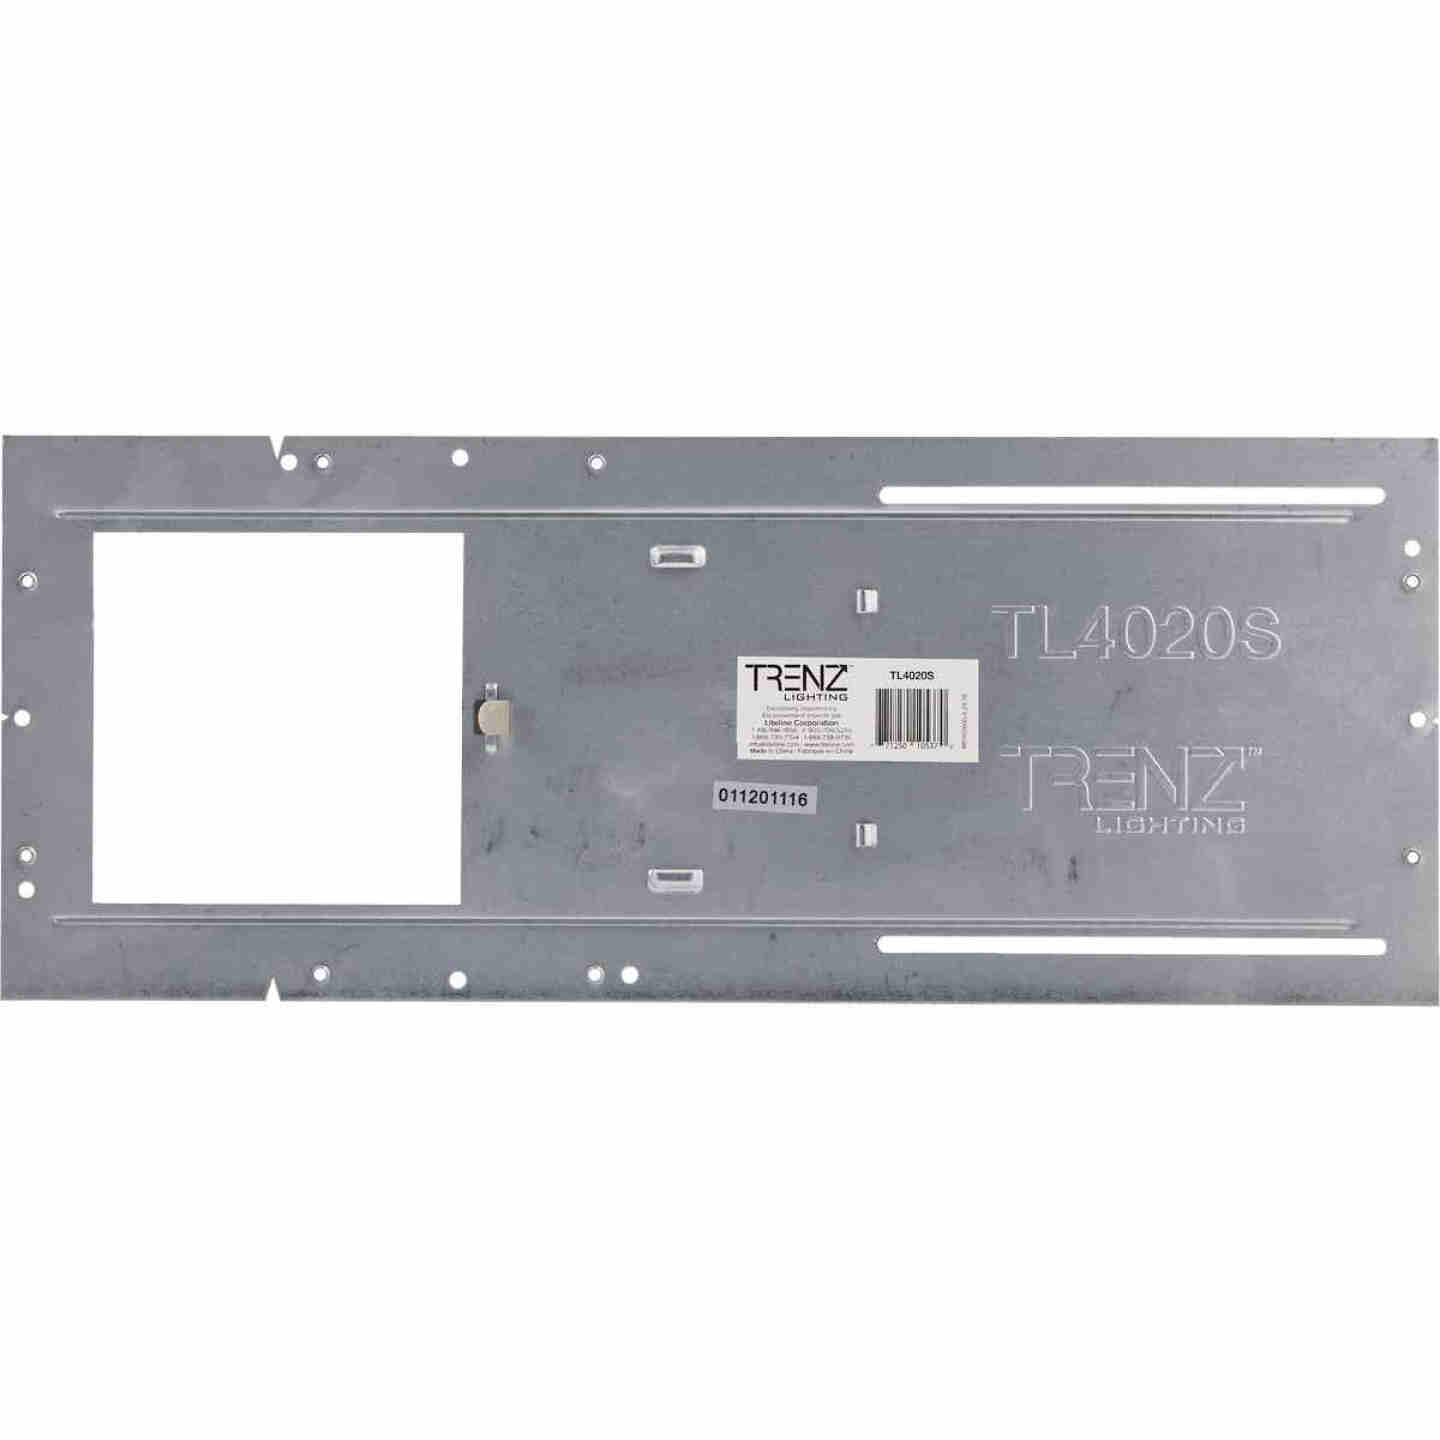 Liteline Trenz ThinLED 4 In. Square Recessed Fixture Mounting Plate Image 2